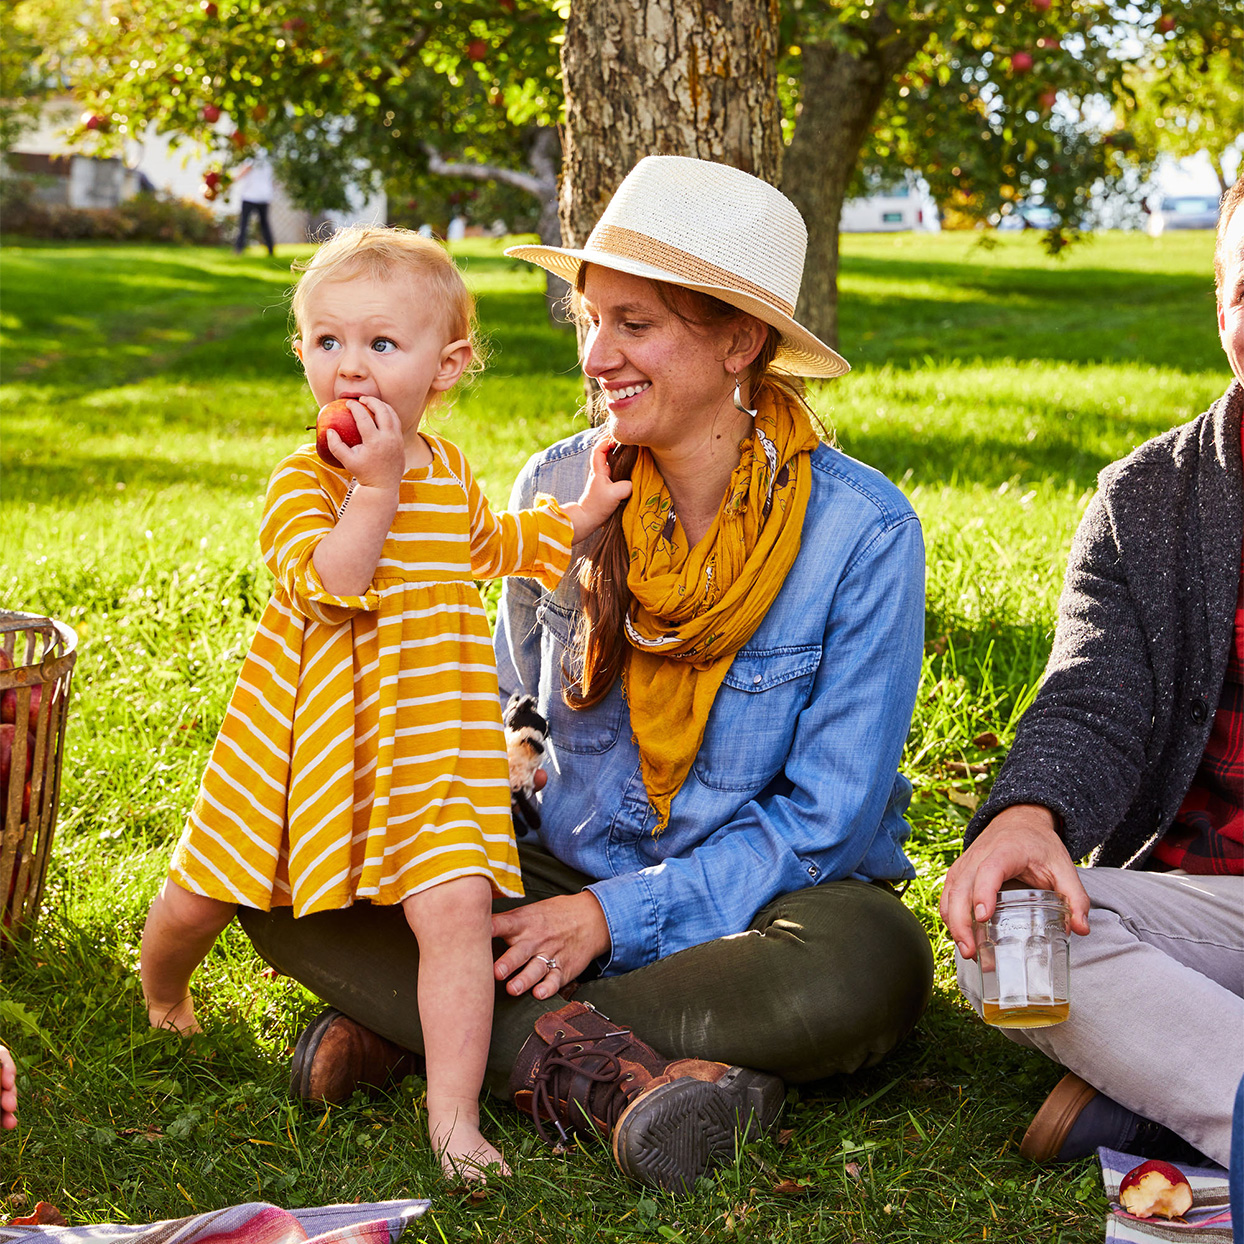 little girl with mom eating apple at picnic